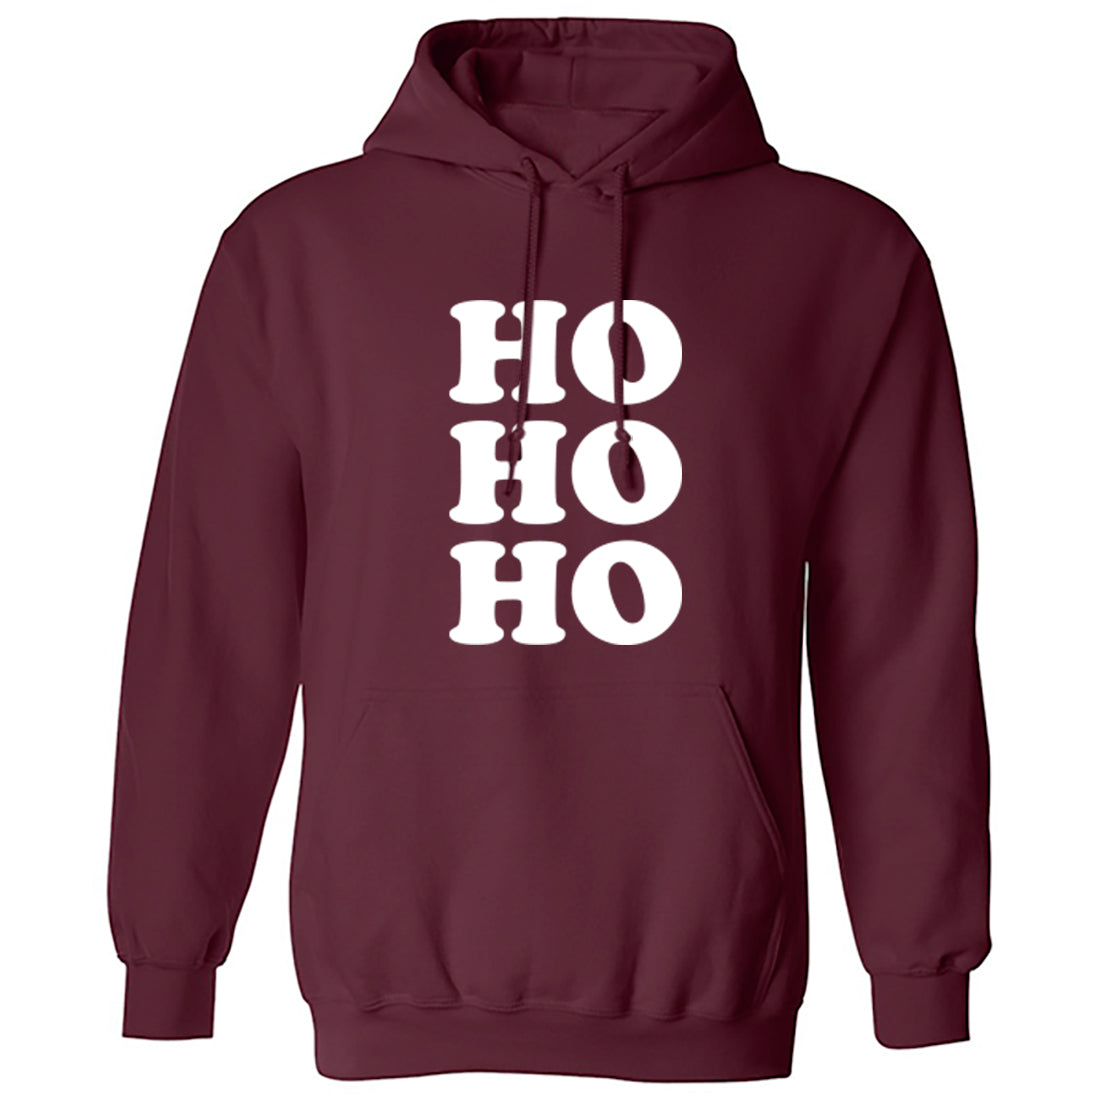 Ho Ho Ho Unisex Hoodie K1171 - Illustrated Identity Ltd.